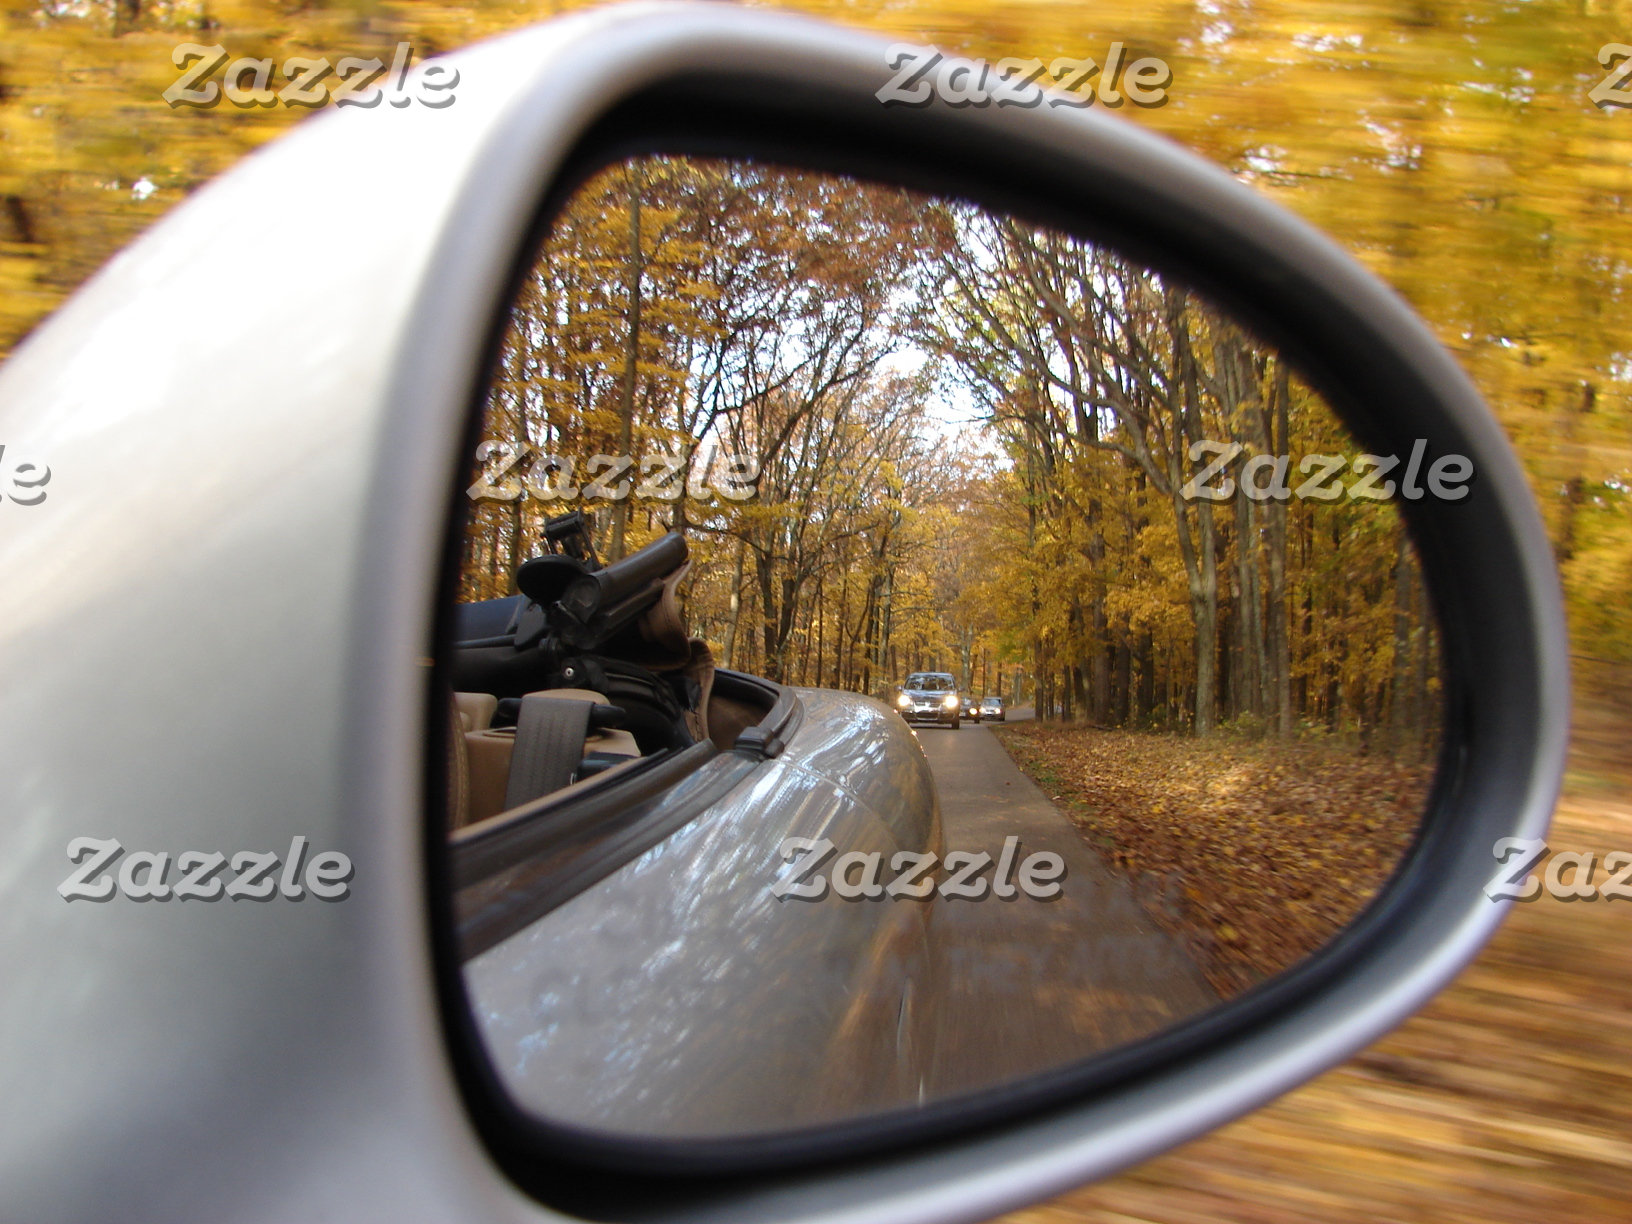 AUTUMN / FALL IN THE REAR VIEW MIRROR SPORTS CAR